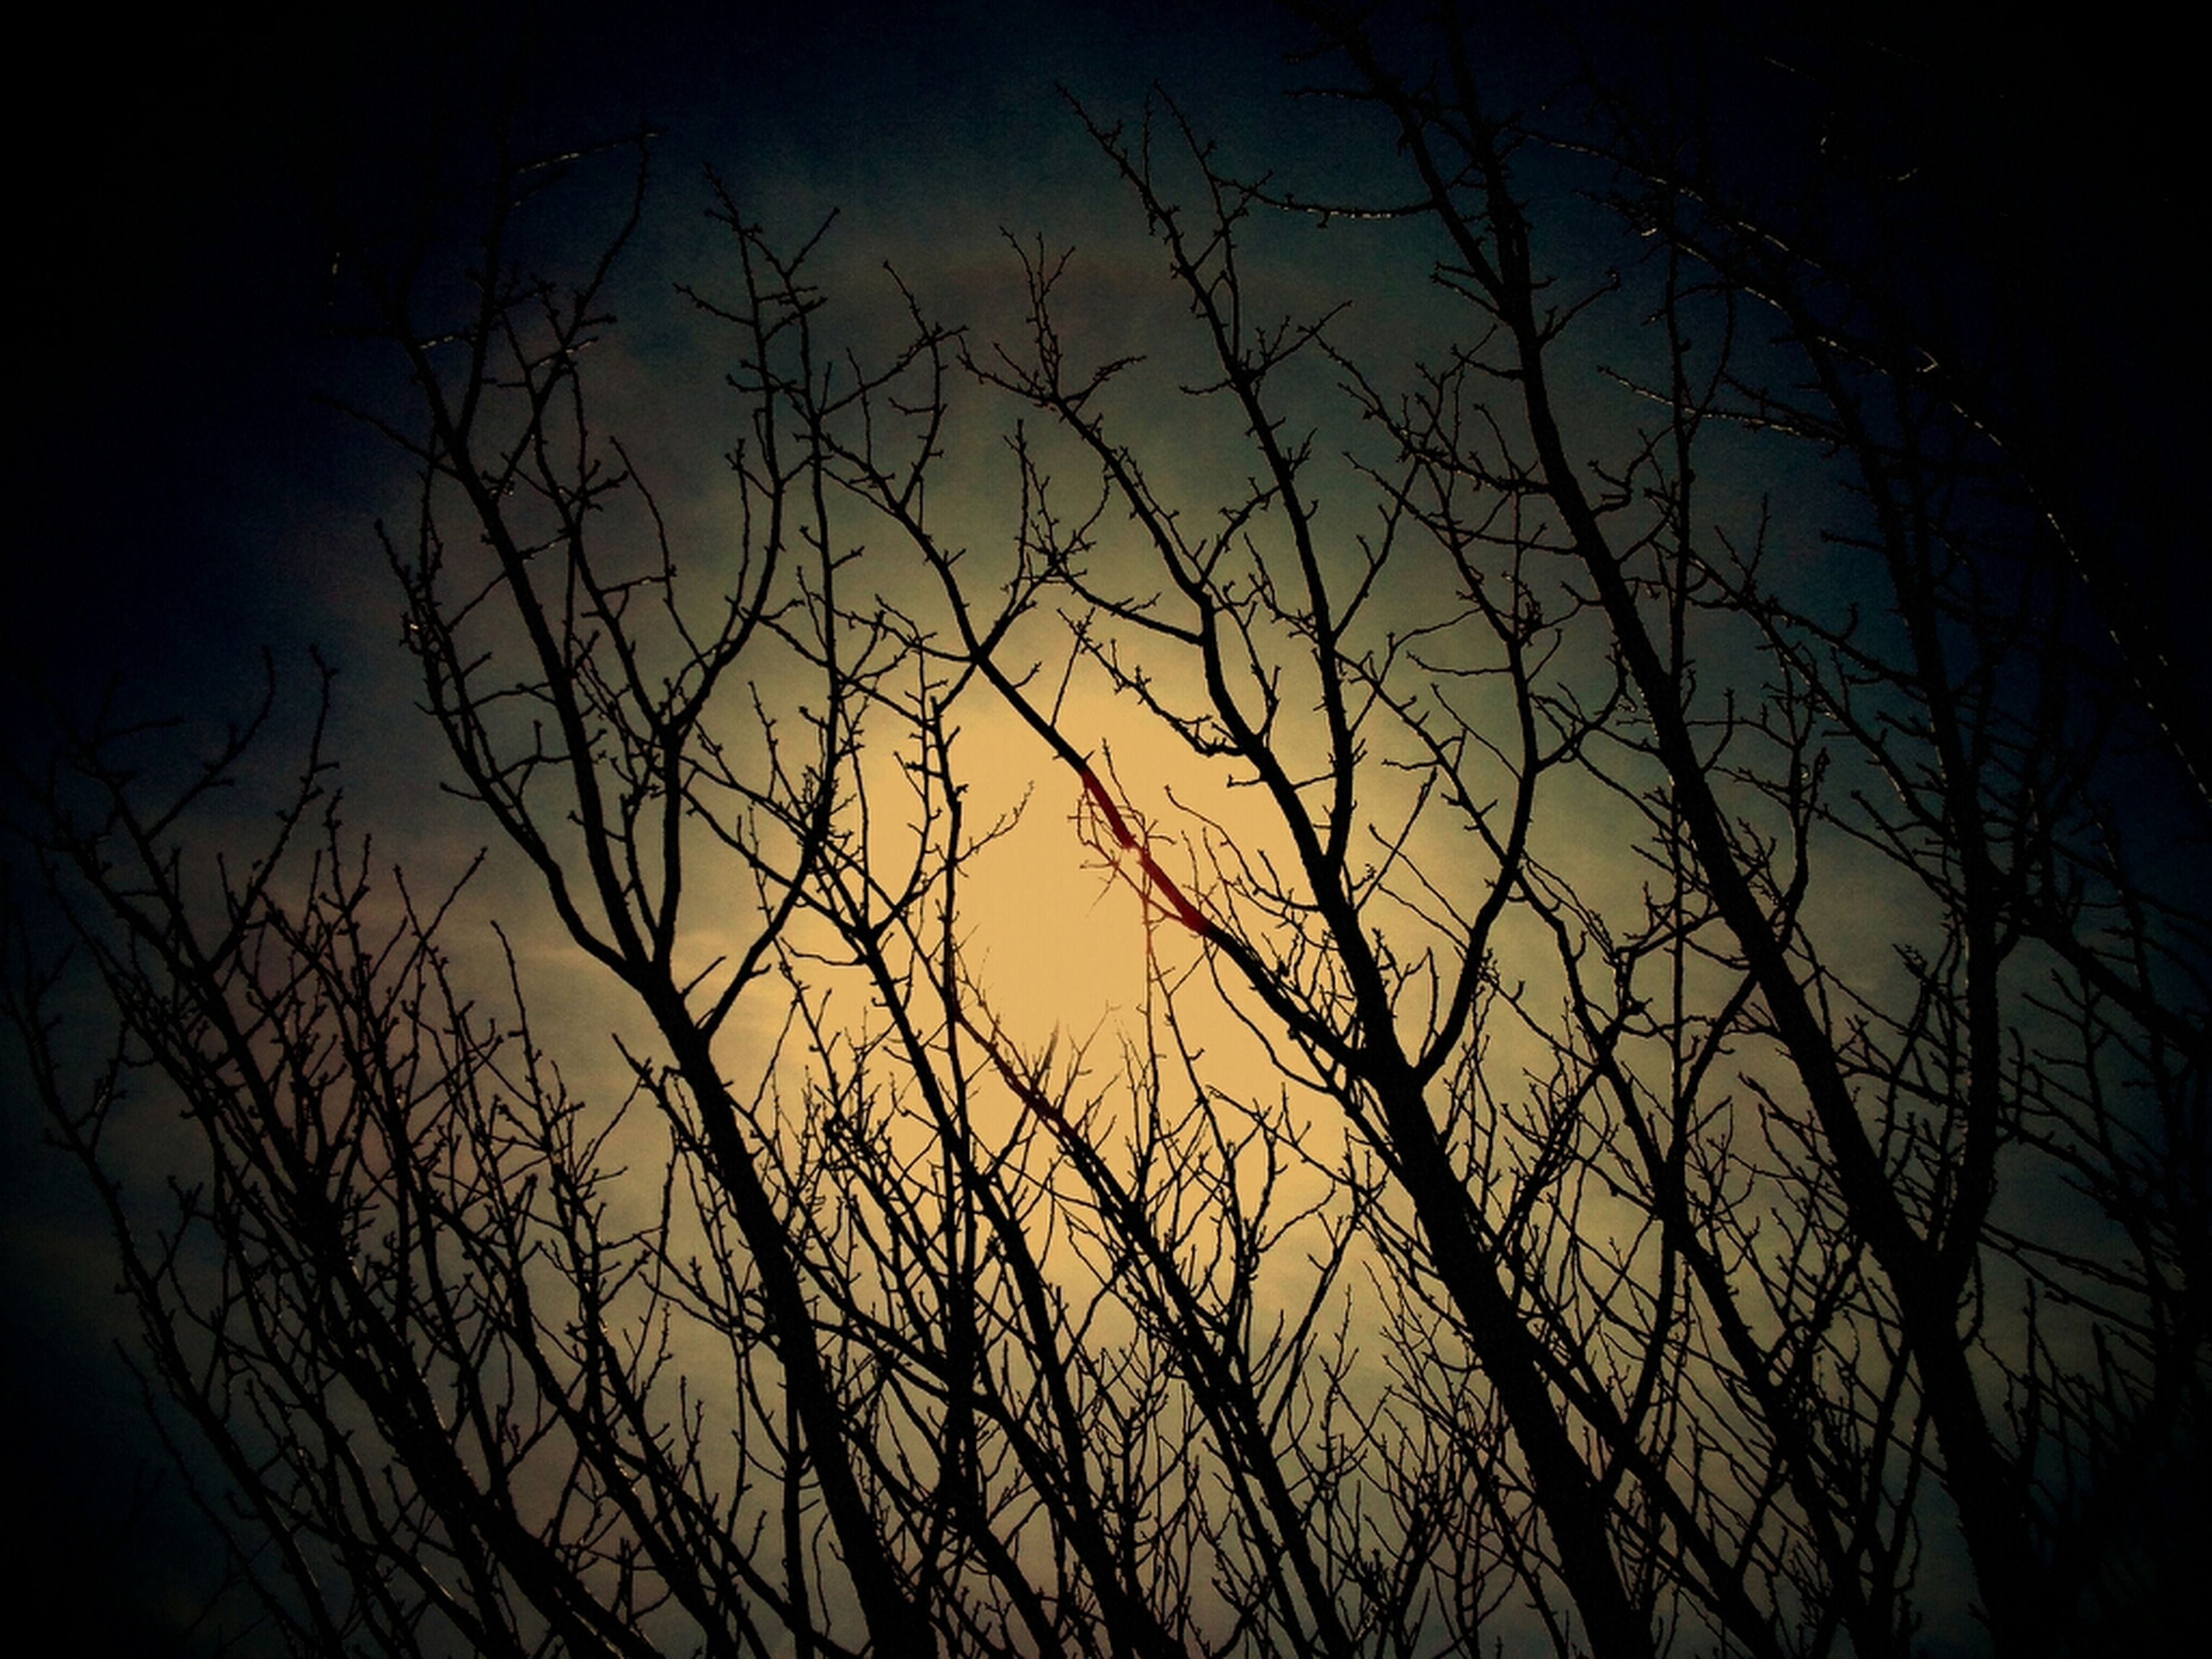 bare tree, branch, silhouette, low angle view, tree, sky, night, tranquility, nature, beauty in nature, dusk, scenics, dark, outdoors, clear sky, growth, tranquil scene, no people, sunset, moon